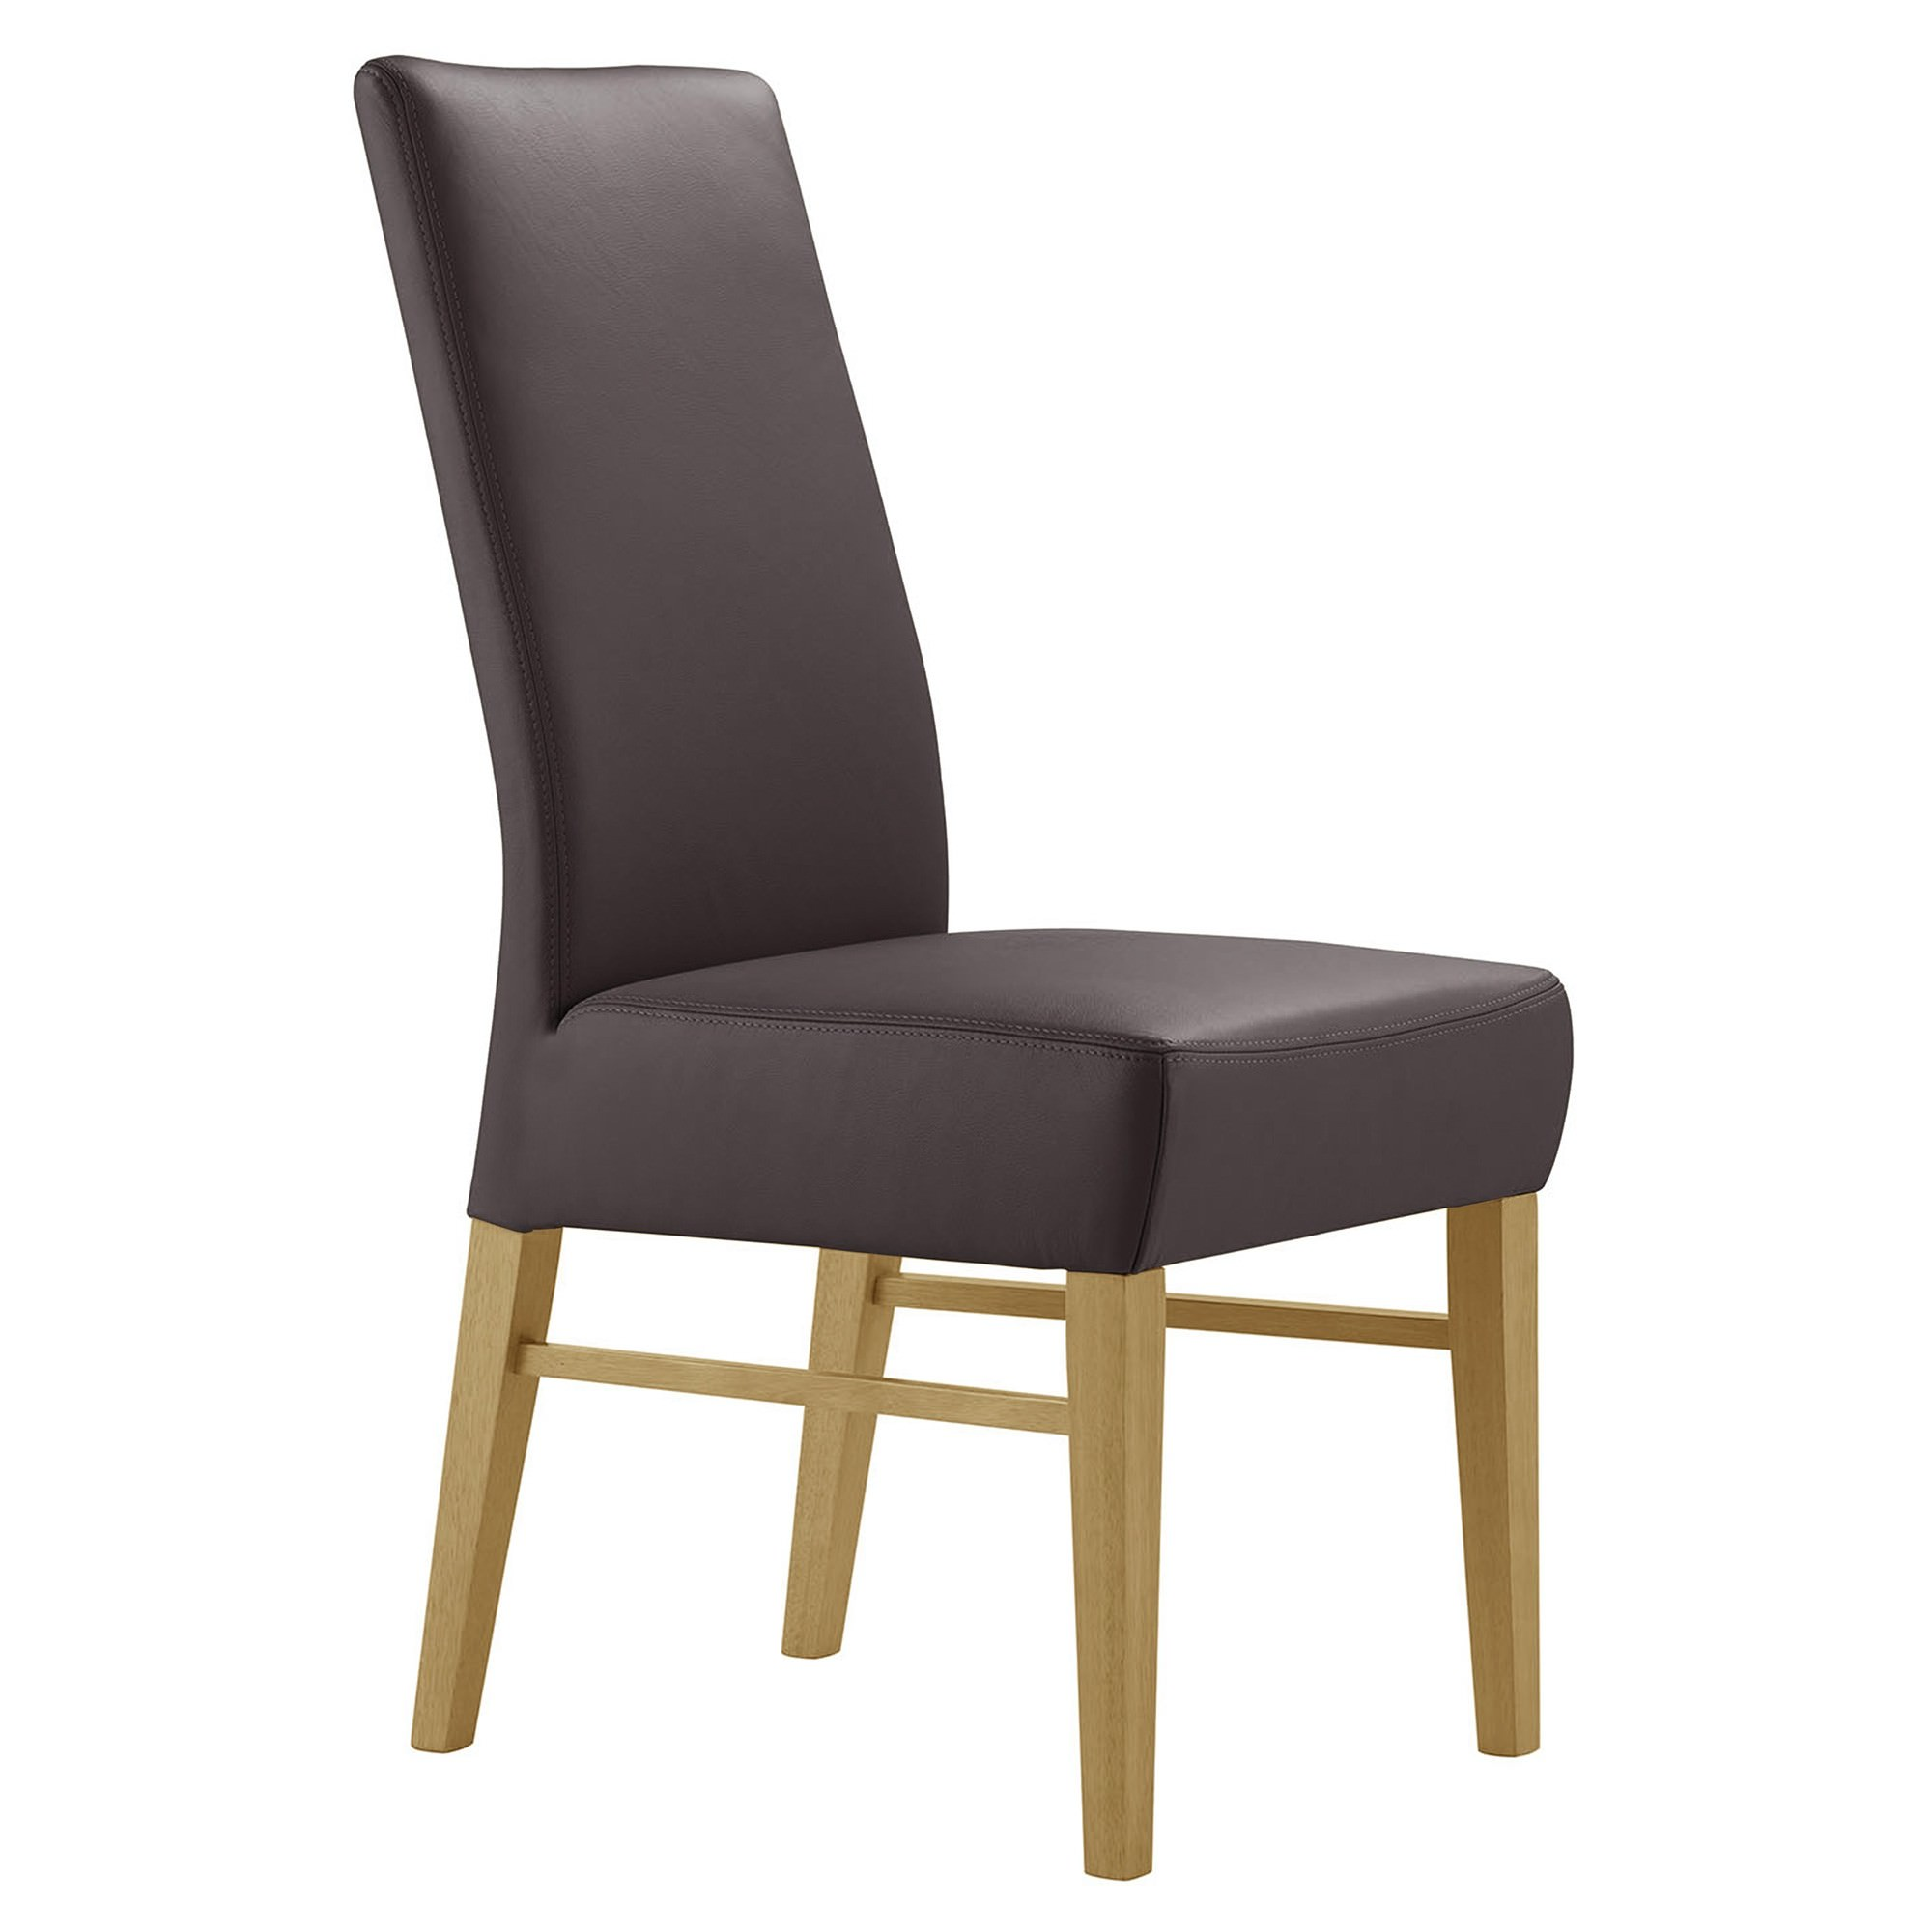 Davos Leather Dining Chair, Brown / Wheat